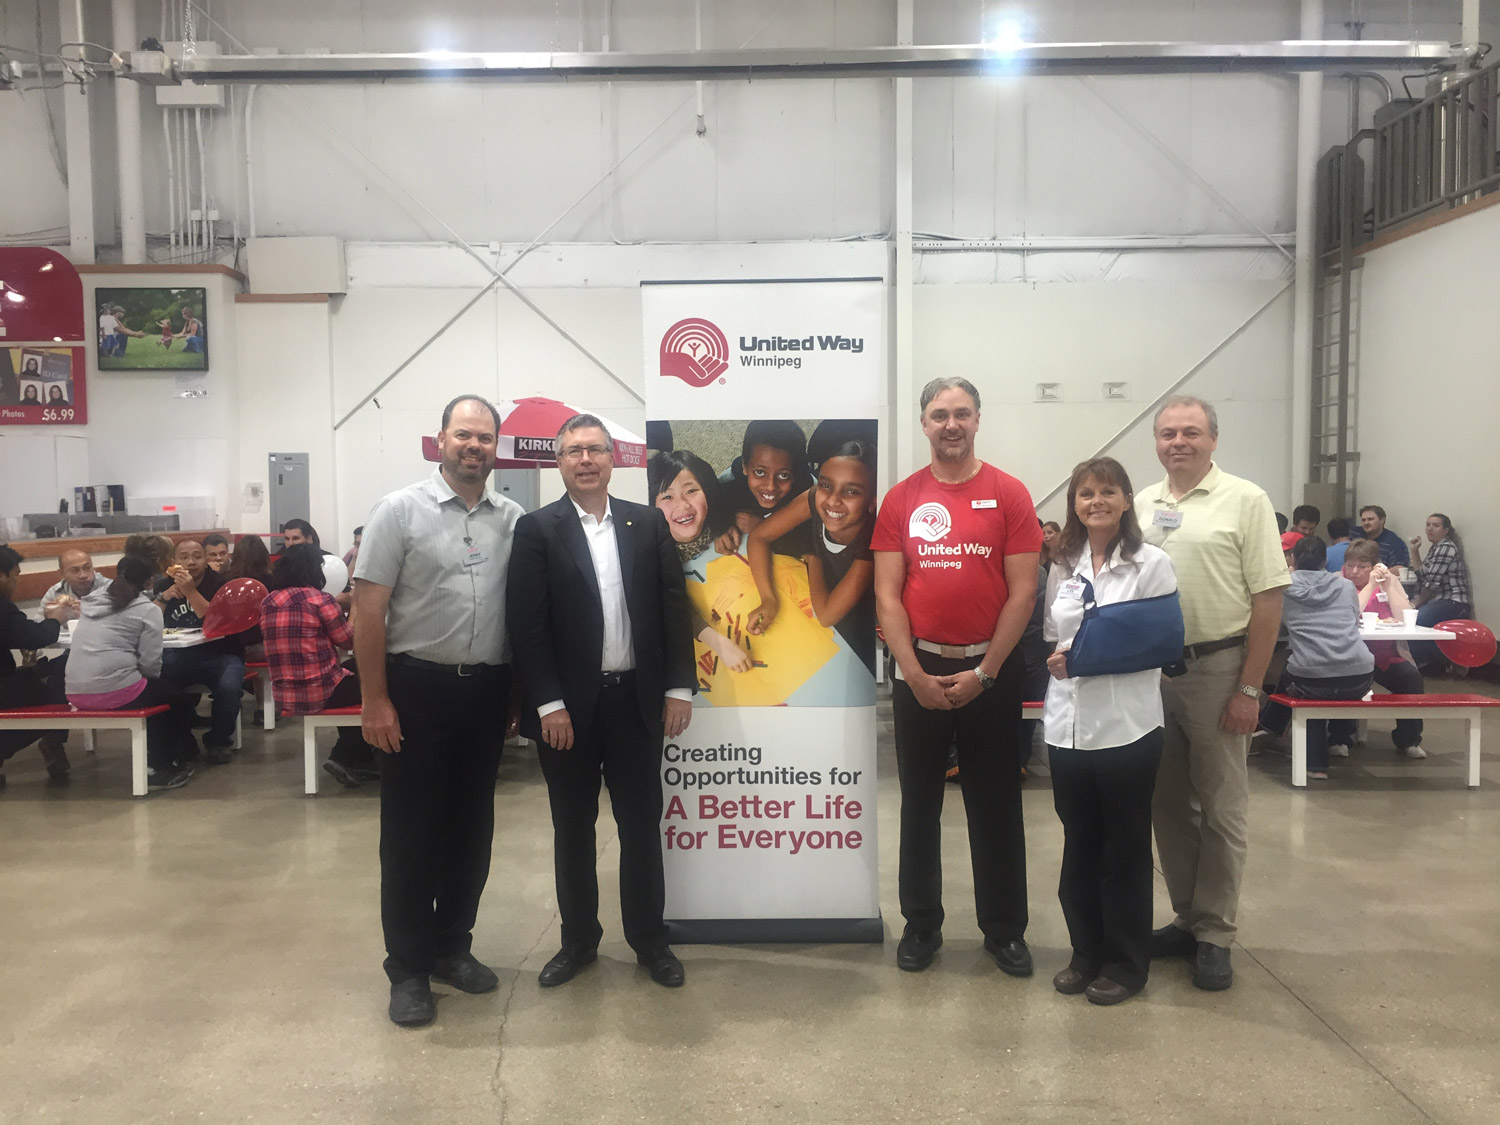 breakfast at costco united way of winnipeg flanking a united way banner from left was costco general manager jerry millar